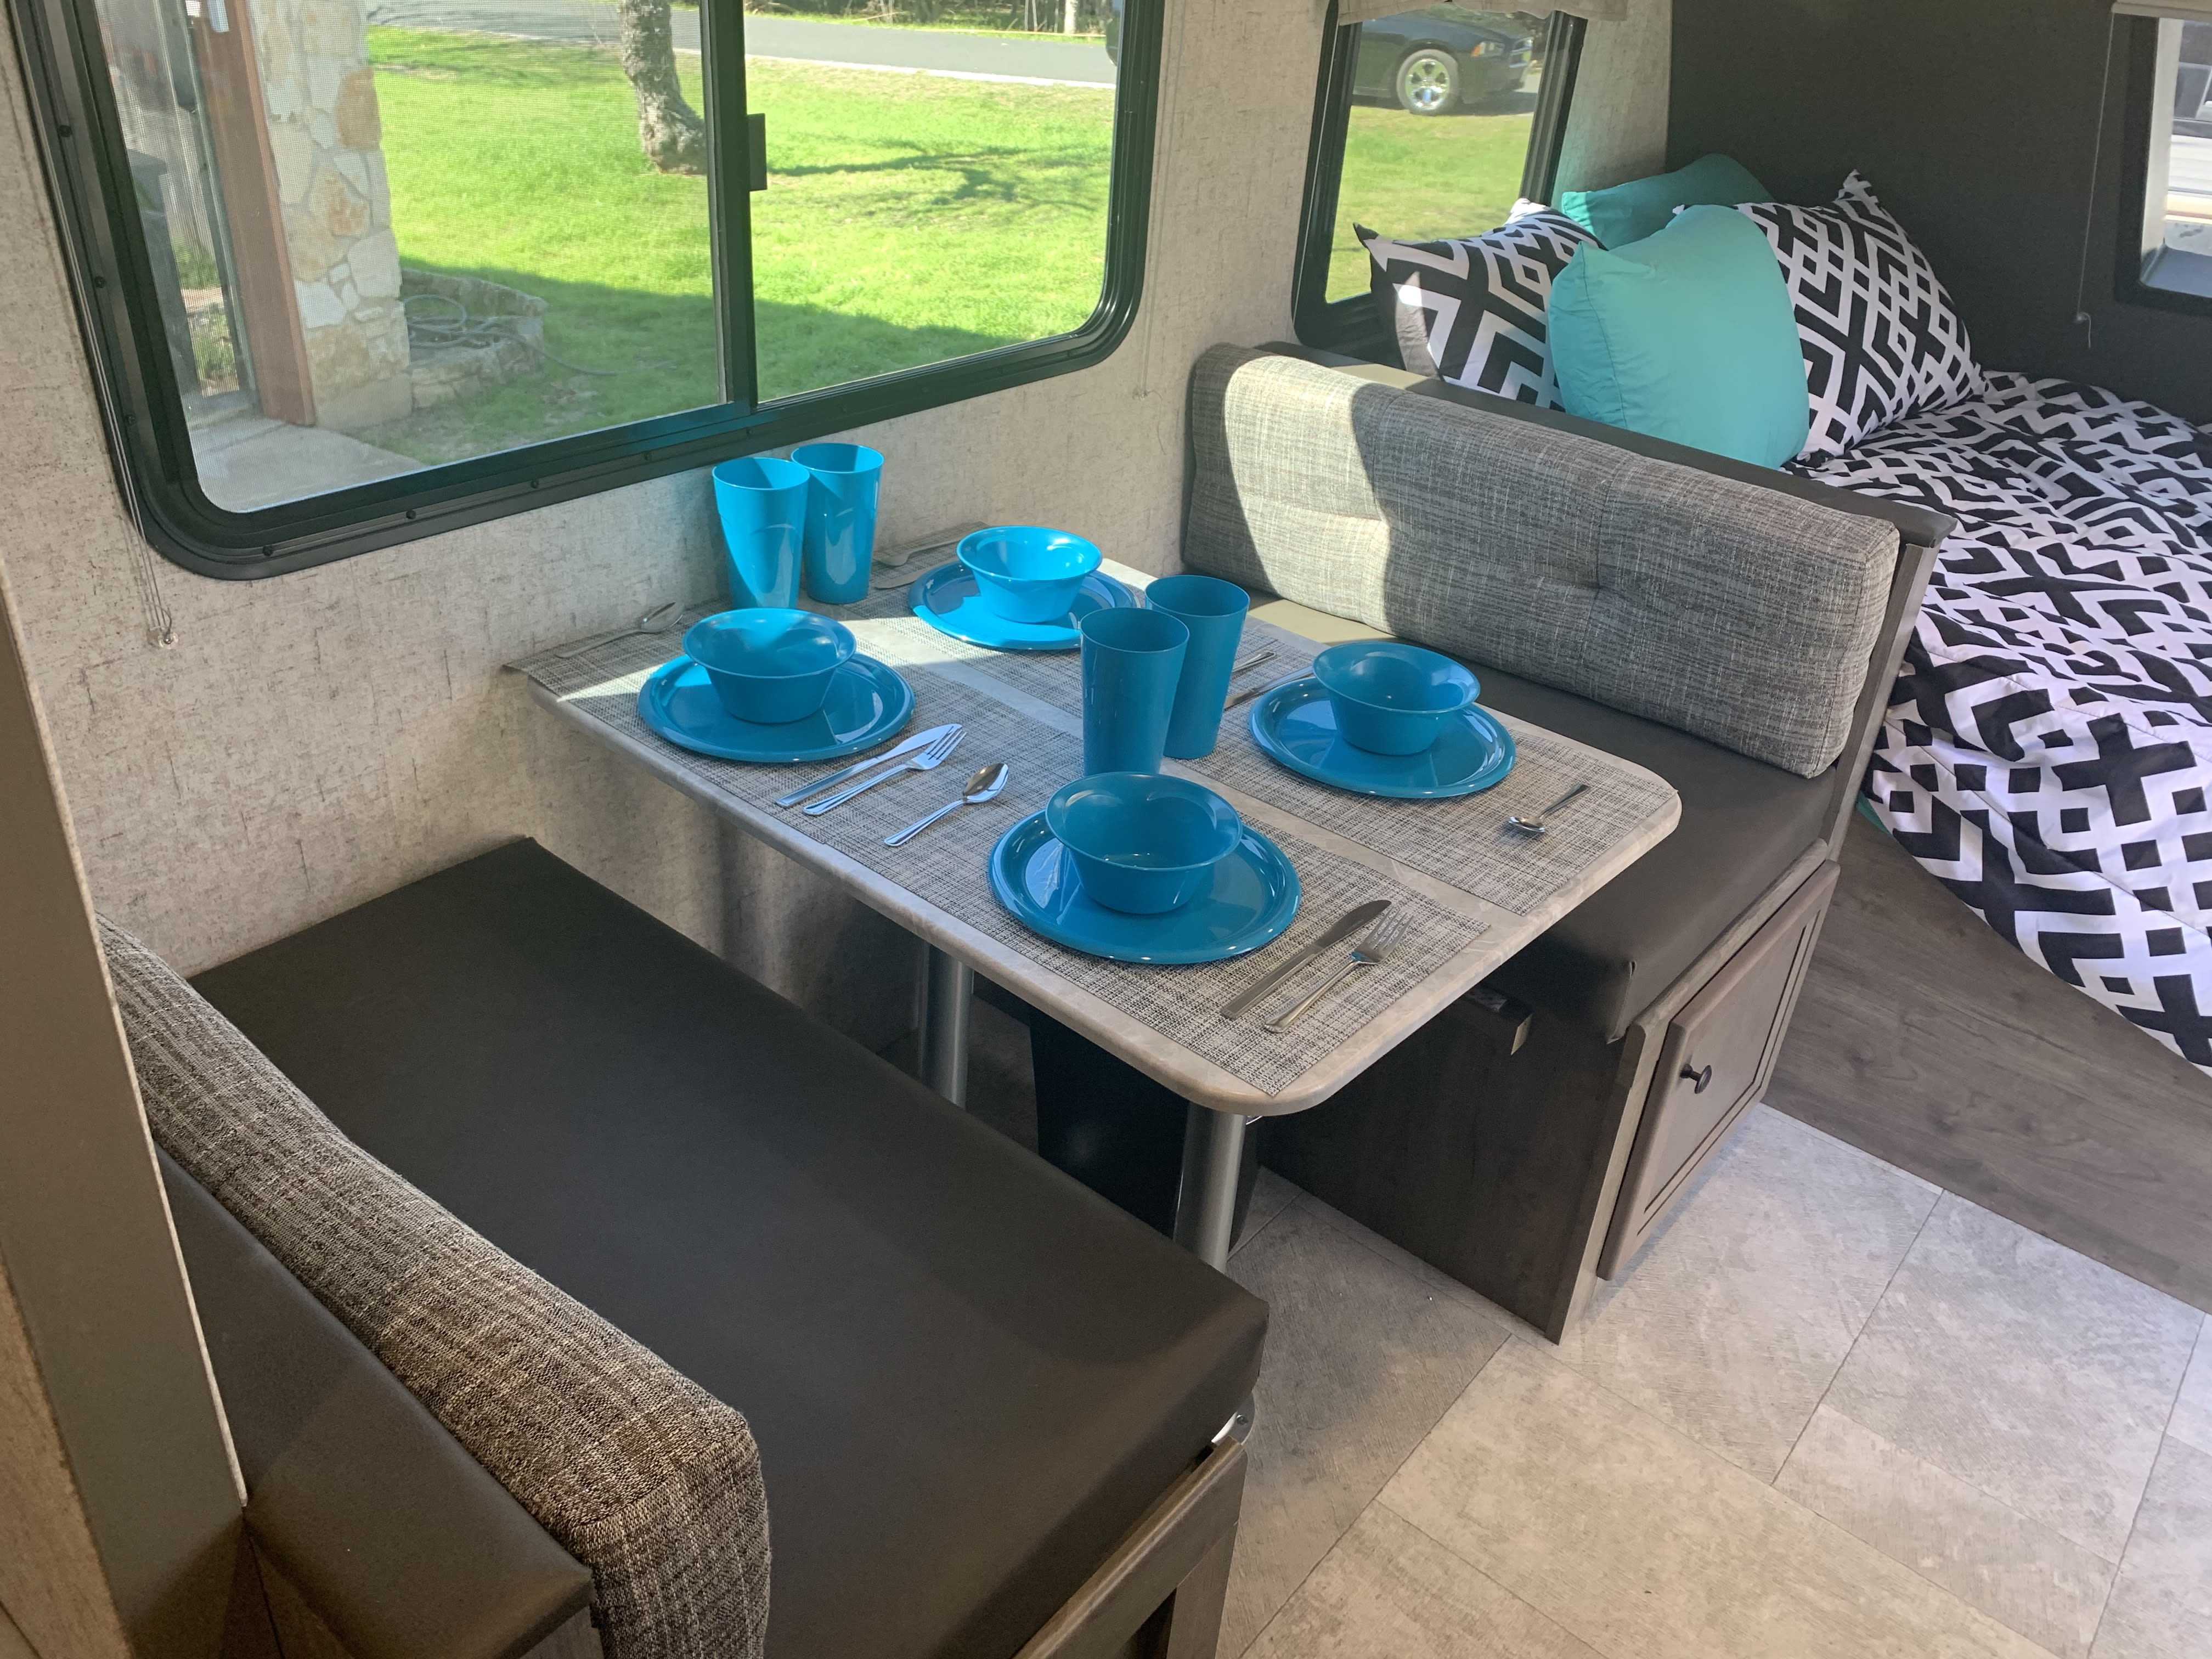 All kitchenware is included with our rentals. This includes flatware, plates and bowls for 8, pots, pans, coffee maker, coffee mugs, a crockpot, a propane grill and more!. Coachmen Apex 2020